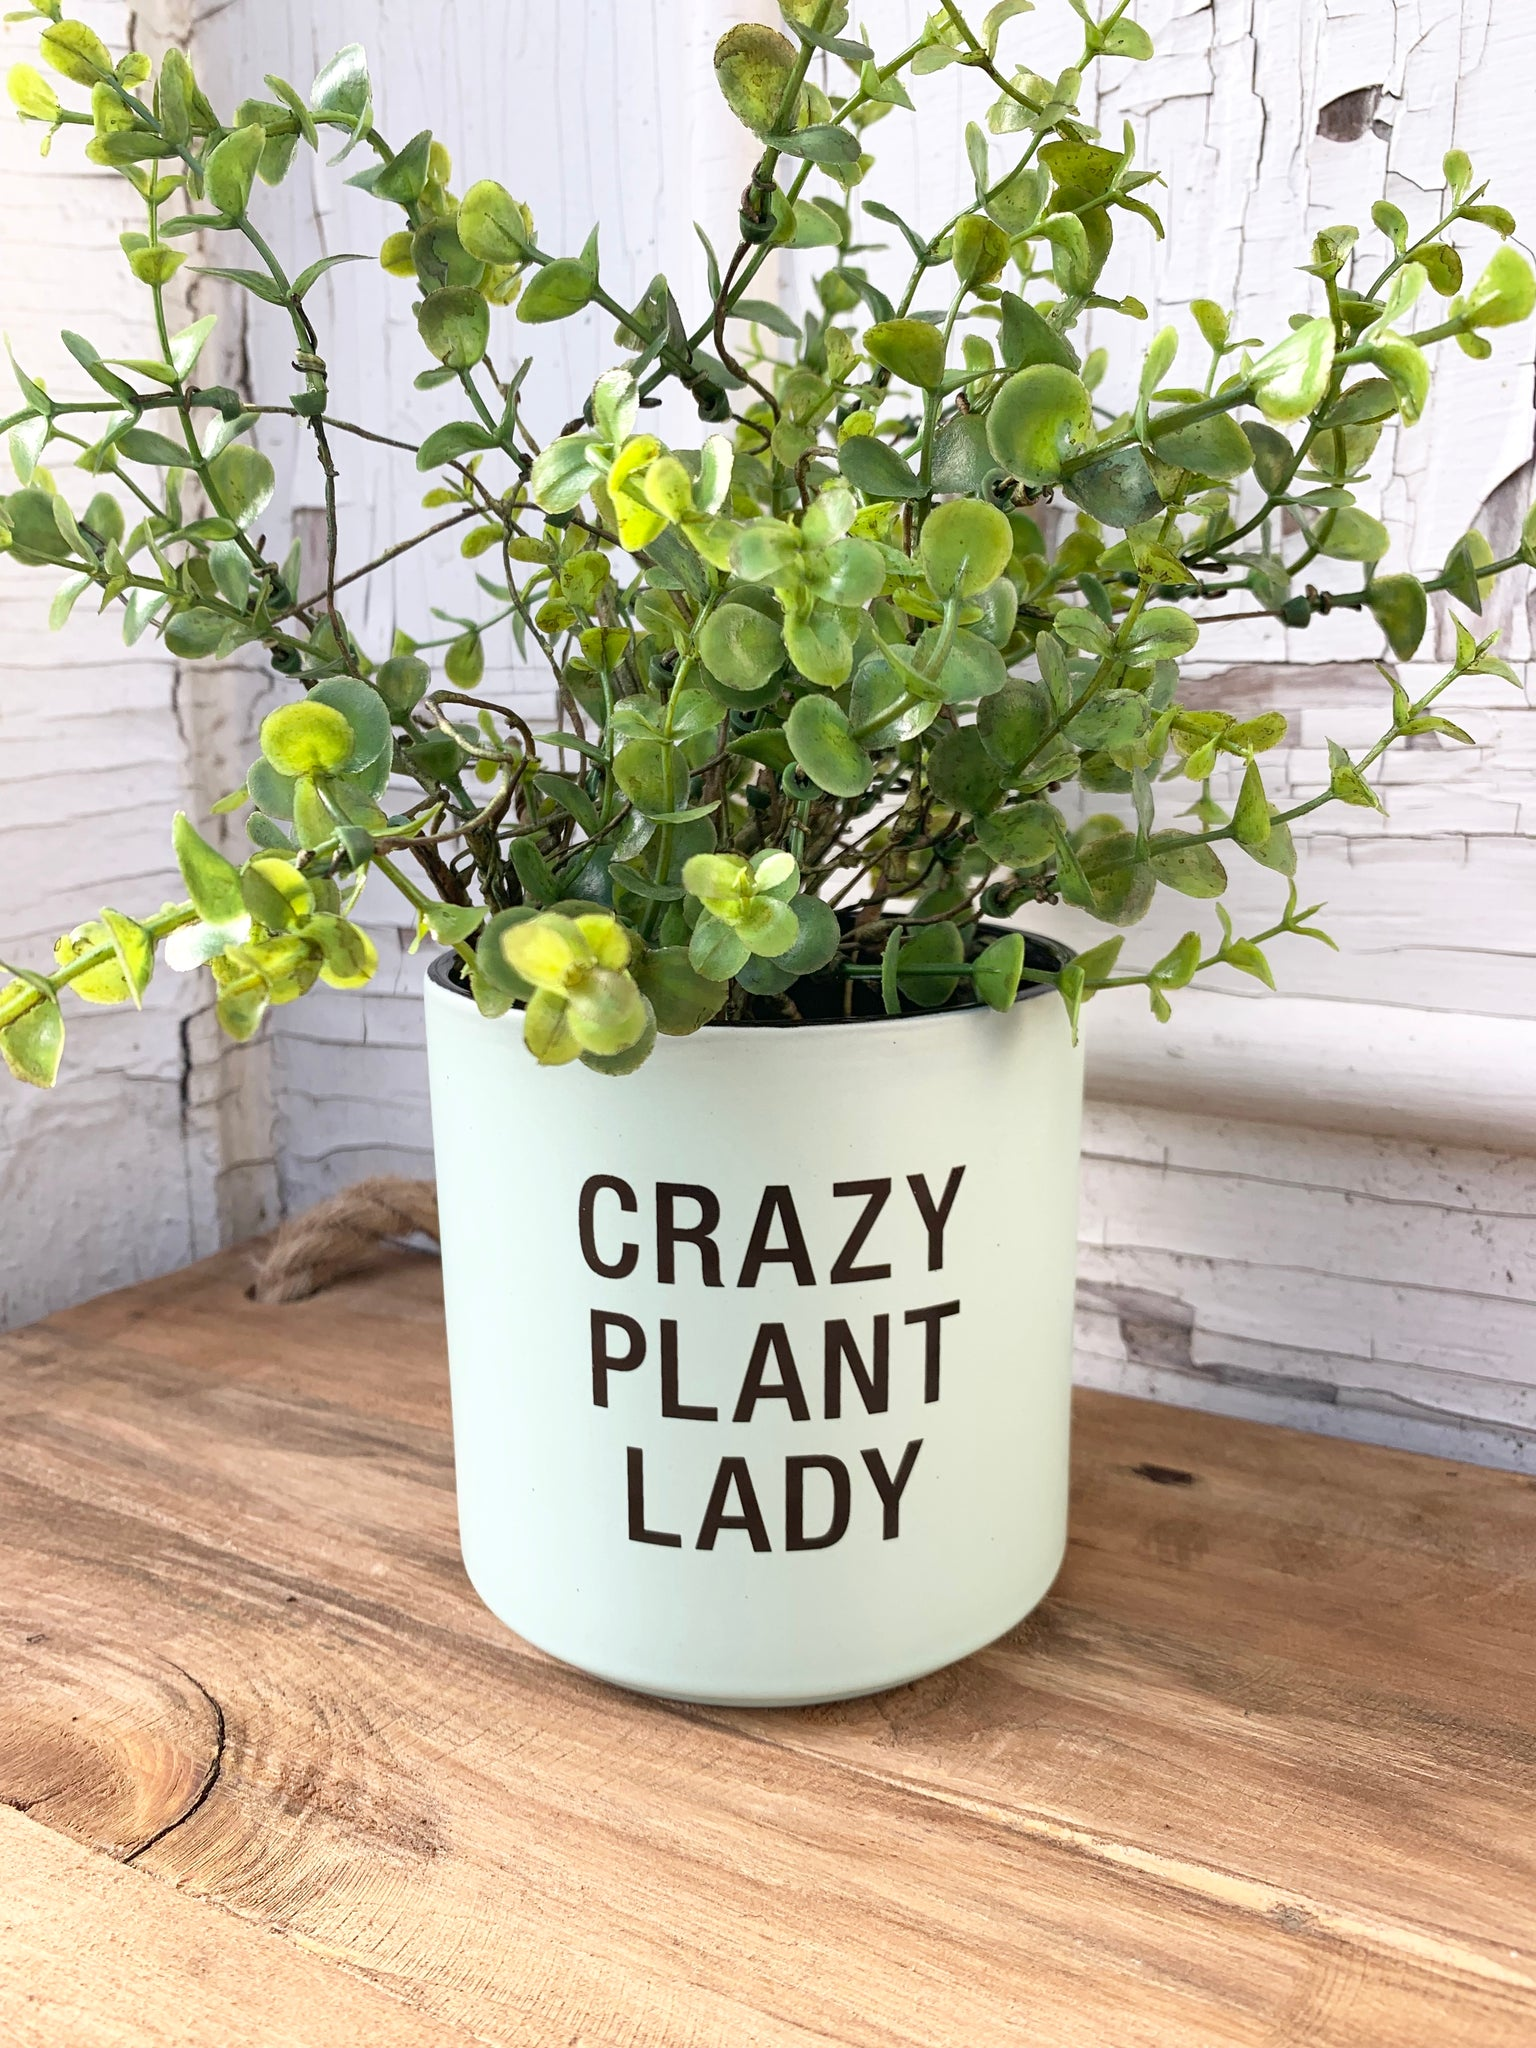 Crazy Plant Lady Planter - UNABLE TO SHIP